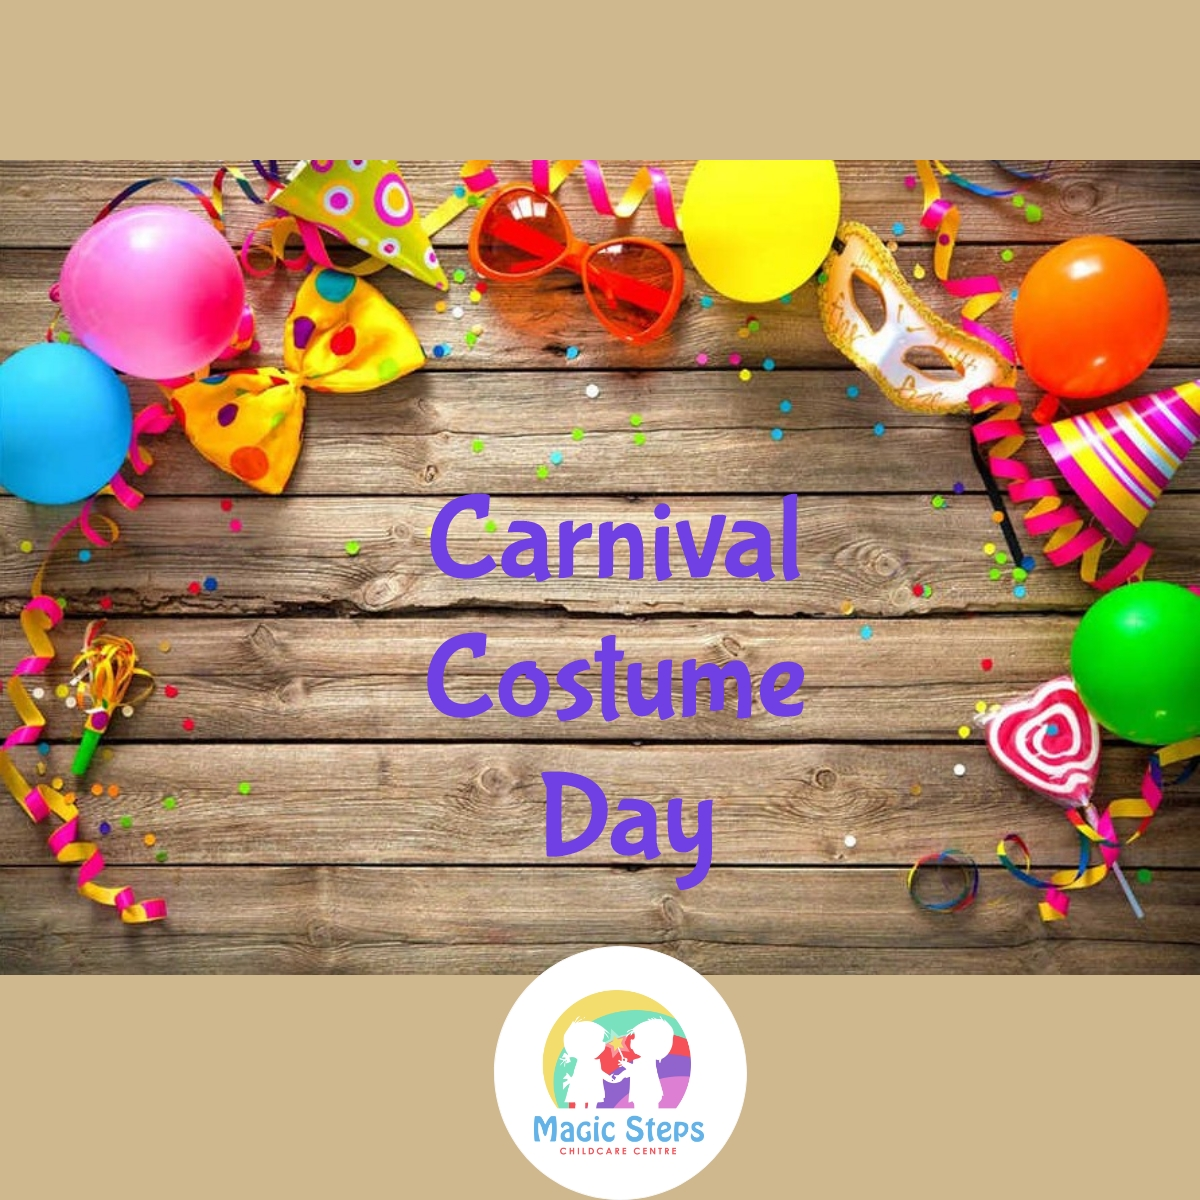 Carnival Costume Day- Friday 12th February